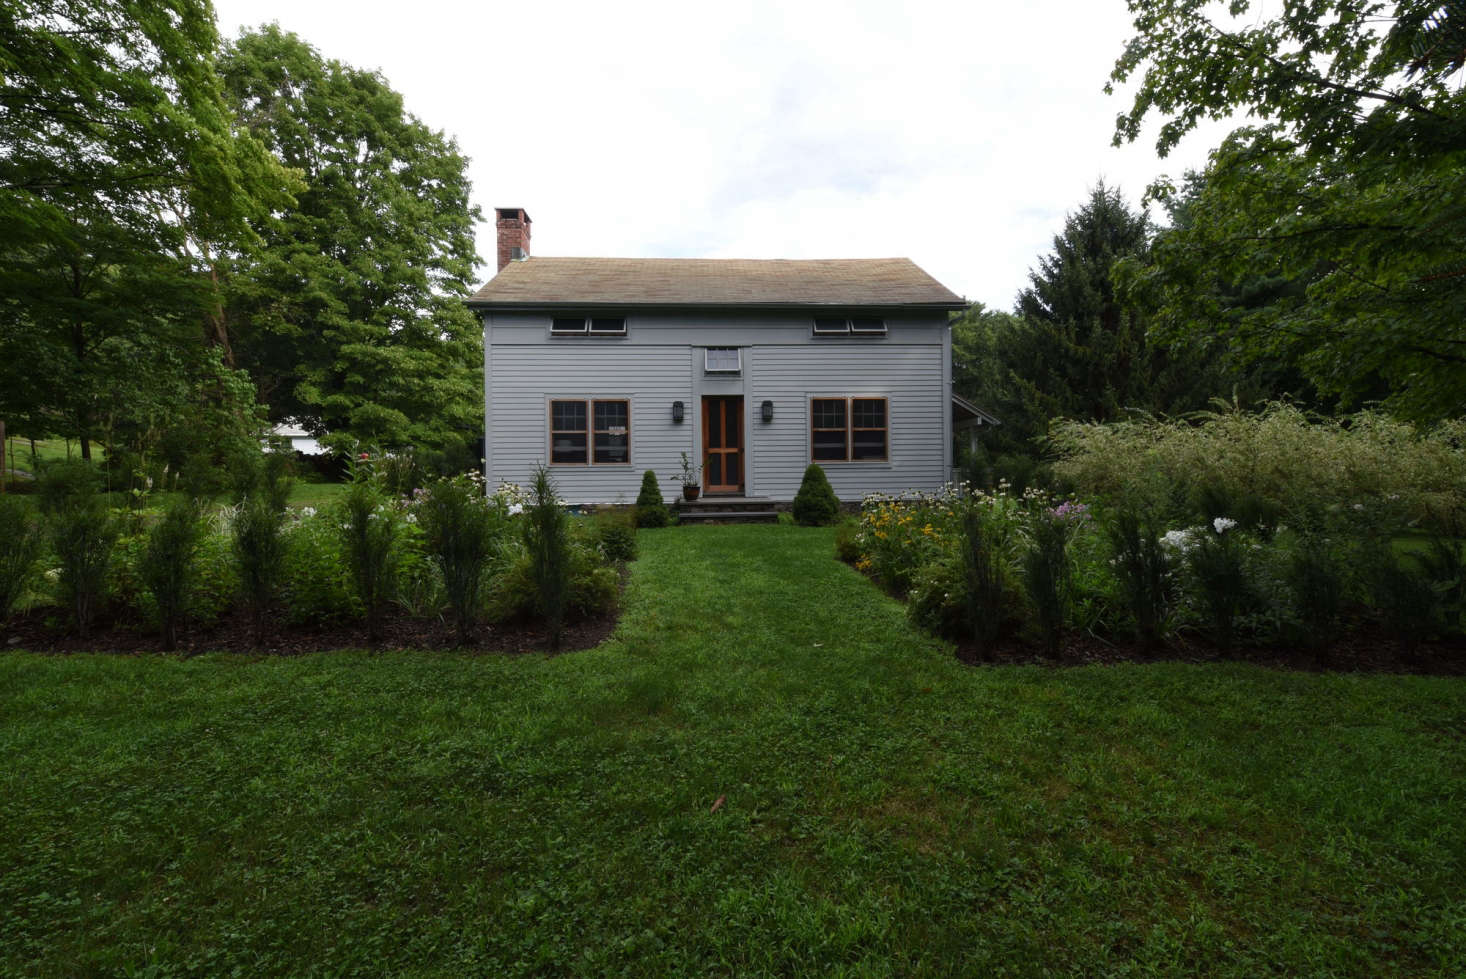 Architect Visit: An Antiquarian Farmhouse in Upstate New York Transformed